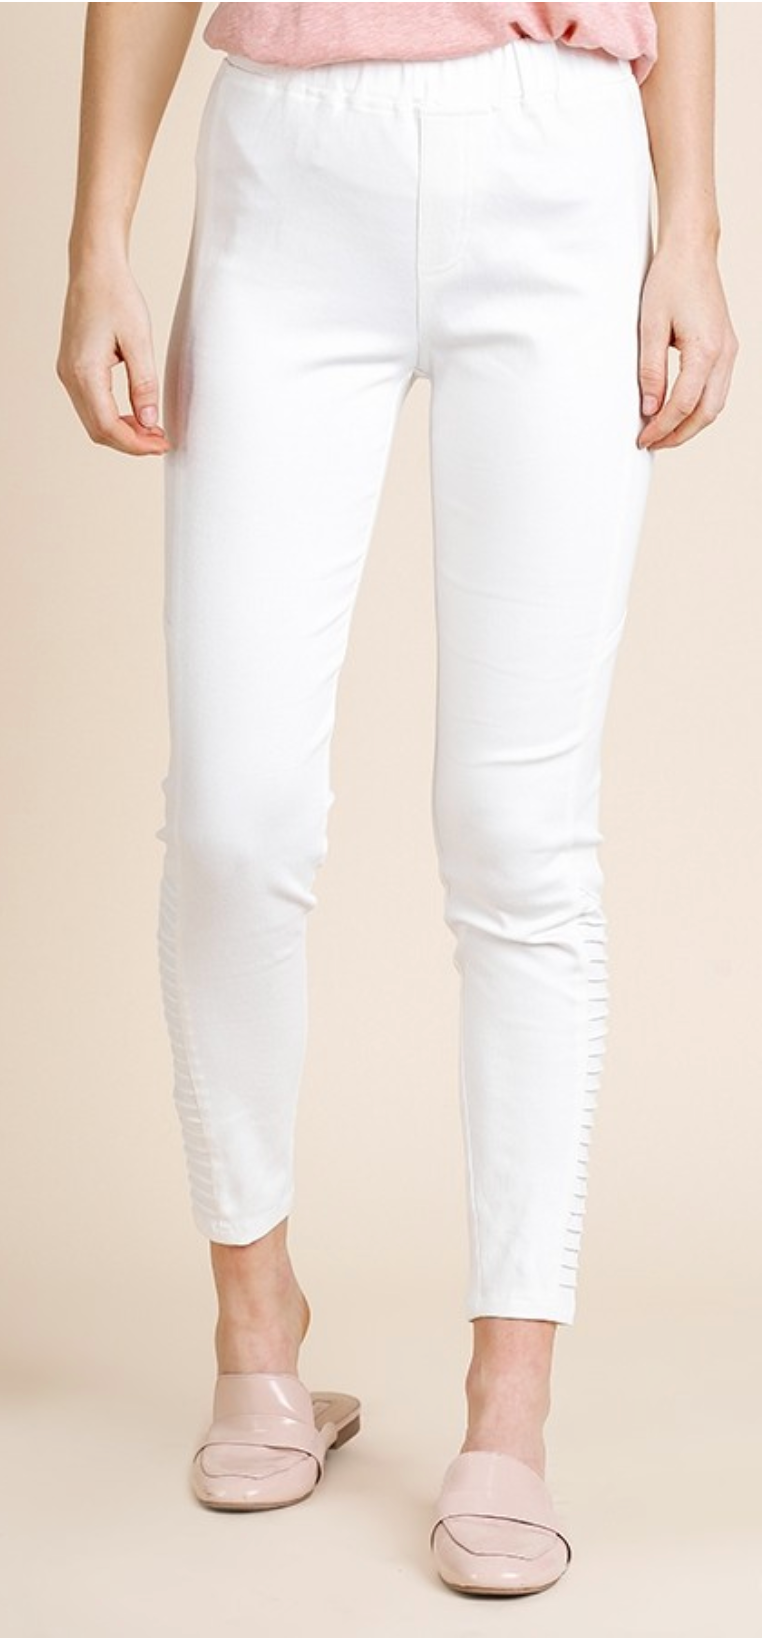 Spring Time Jeggings